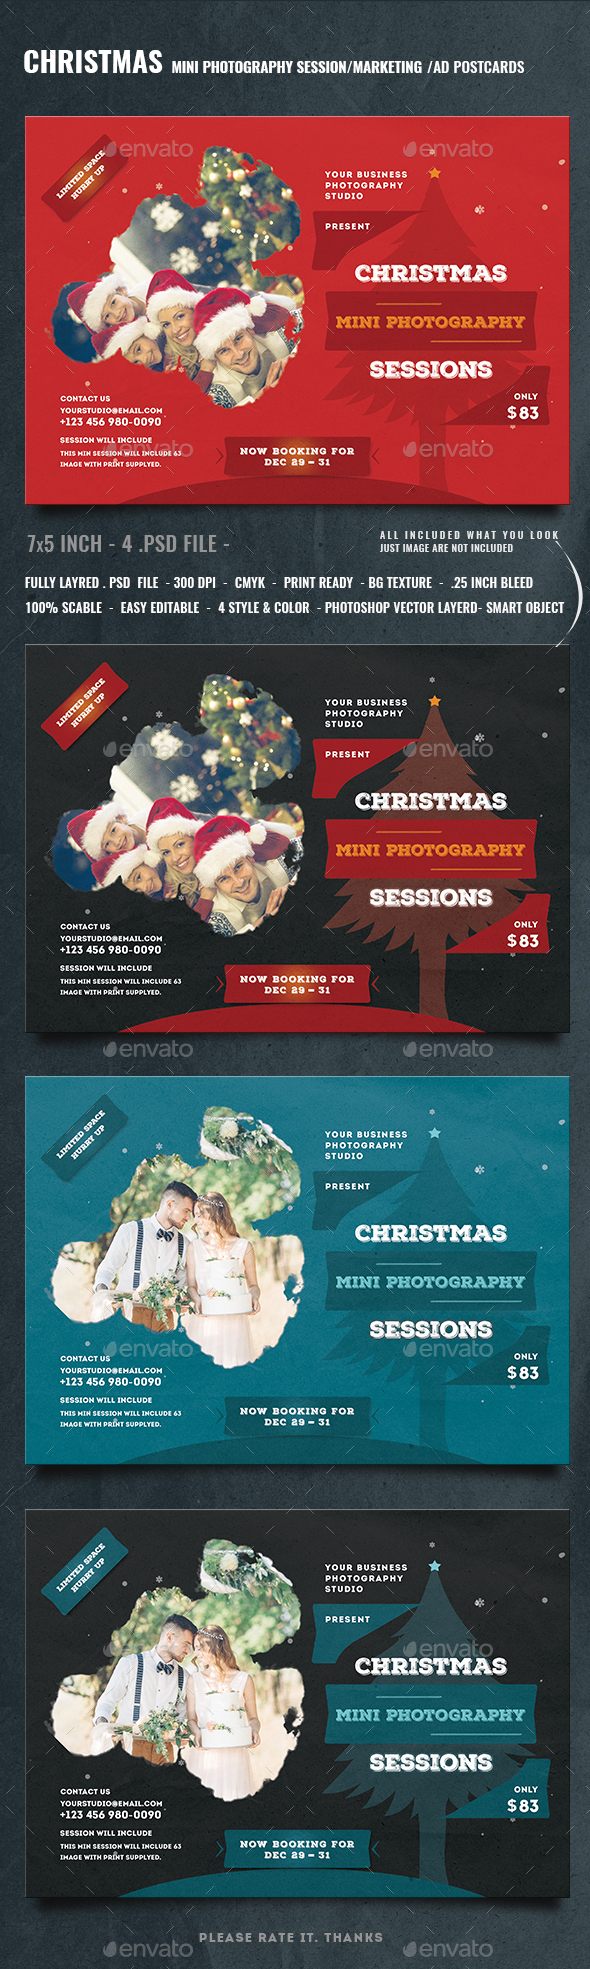 Christmas Mini Session Photography Template - Events Flyers